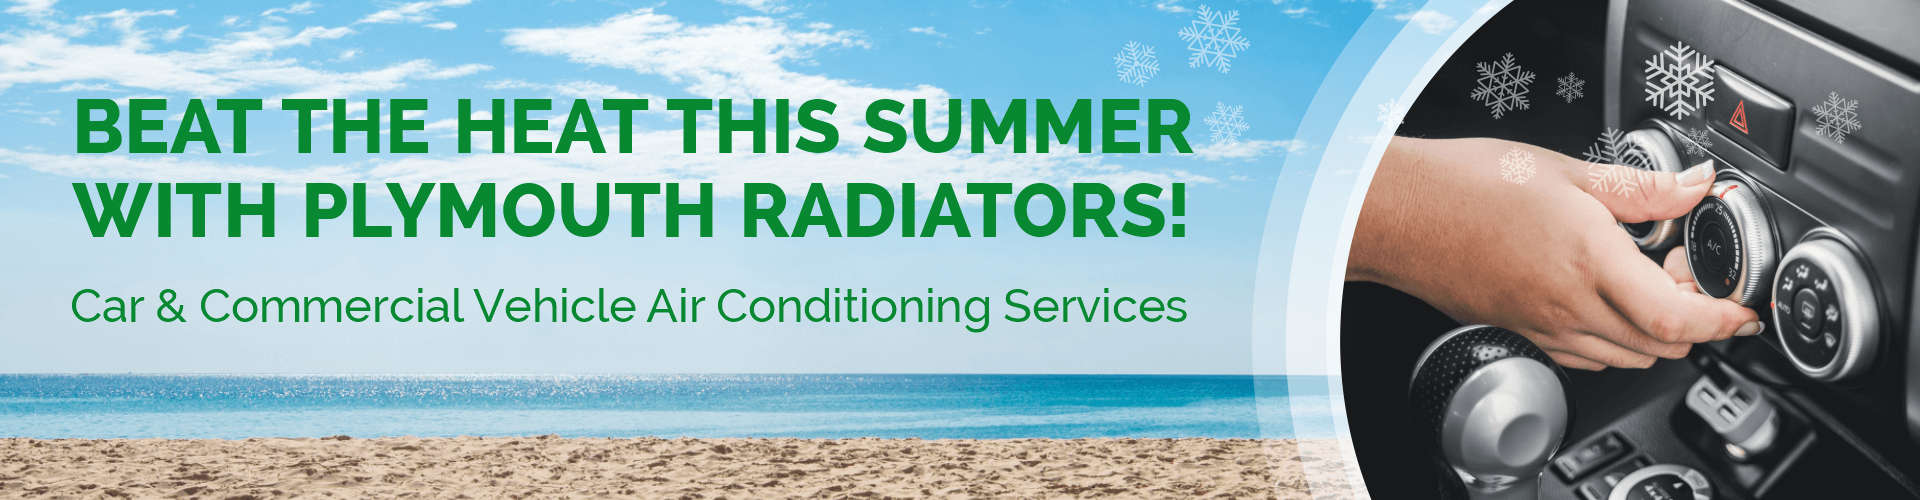 Air Conditioning - Summer 2021 - Plymouth Radiators